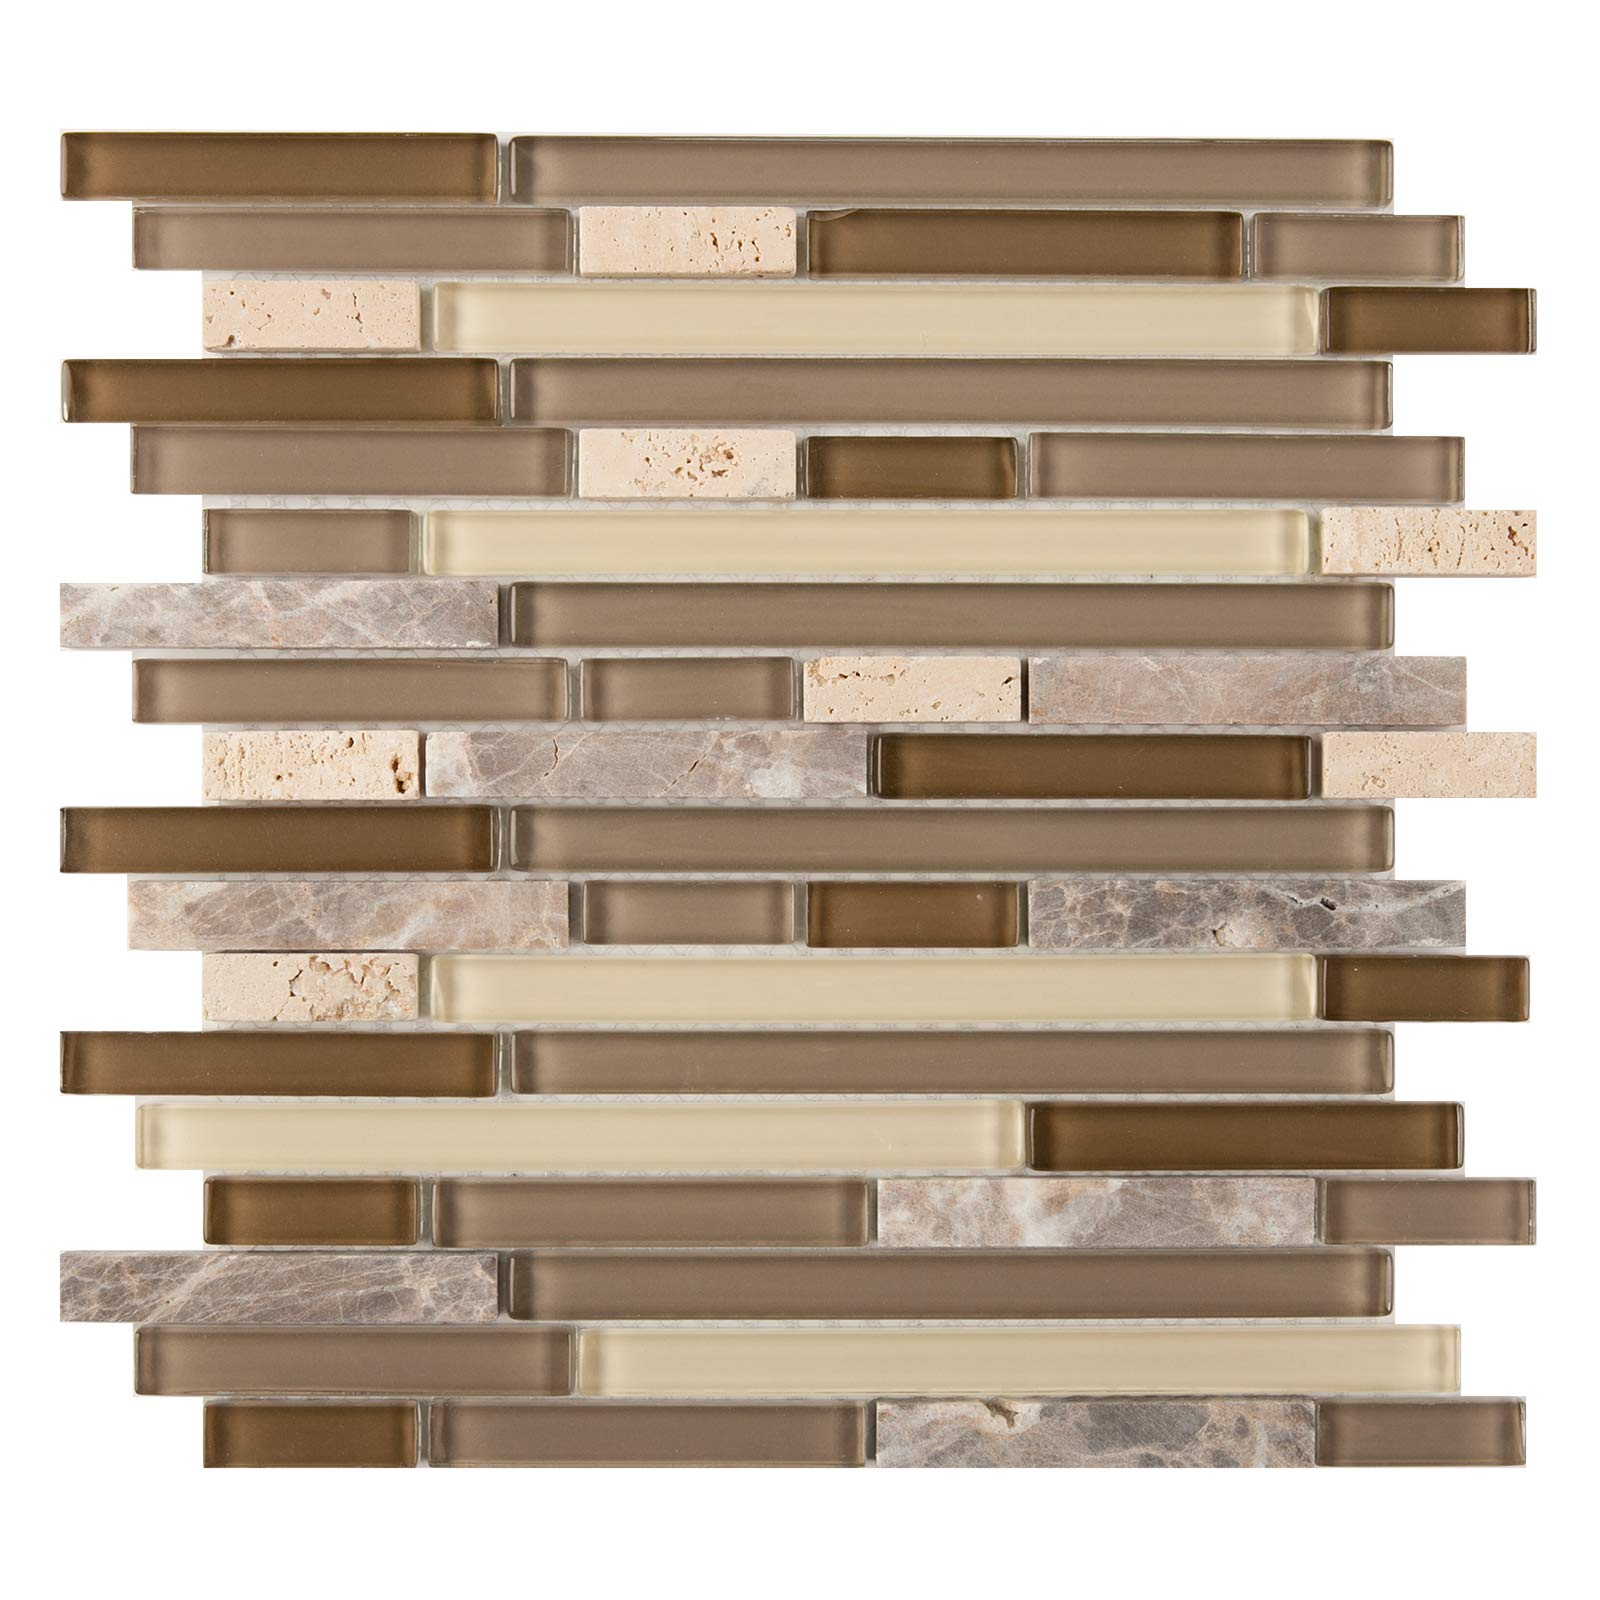 Glass and Stone Mosaic Tile, ACL 1001, Mixed Strips, 12''x12''x1/4'' (Box of 5 Sheets)